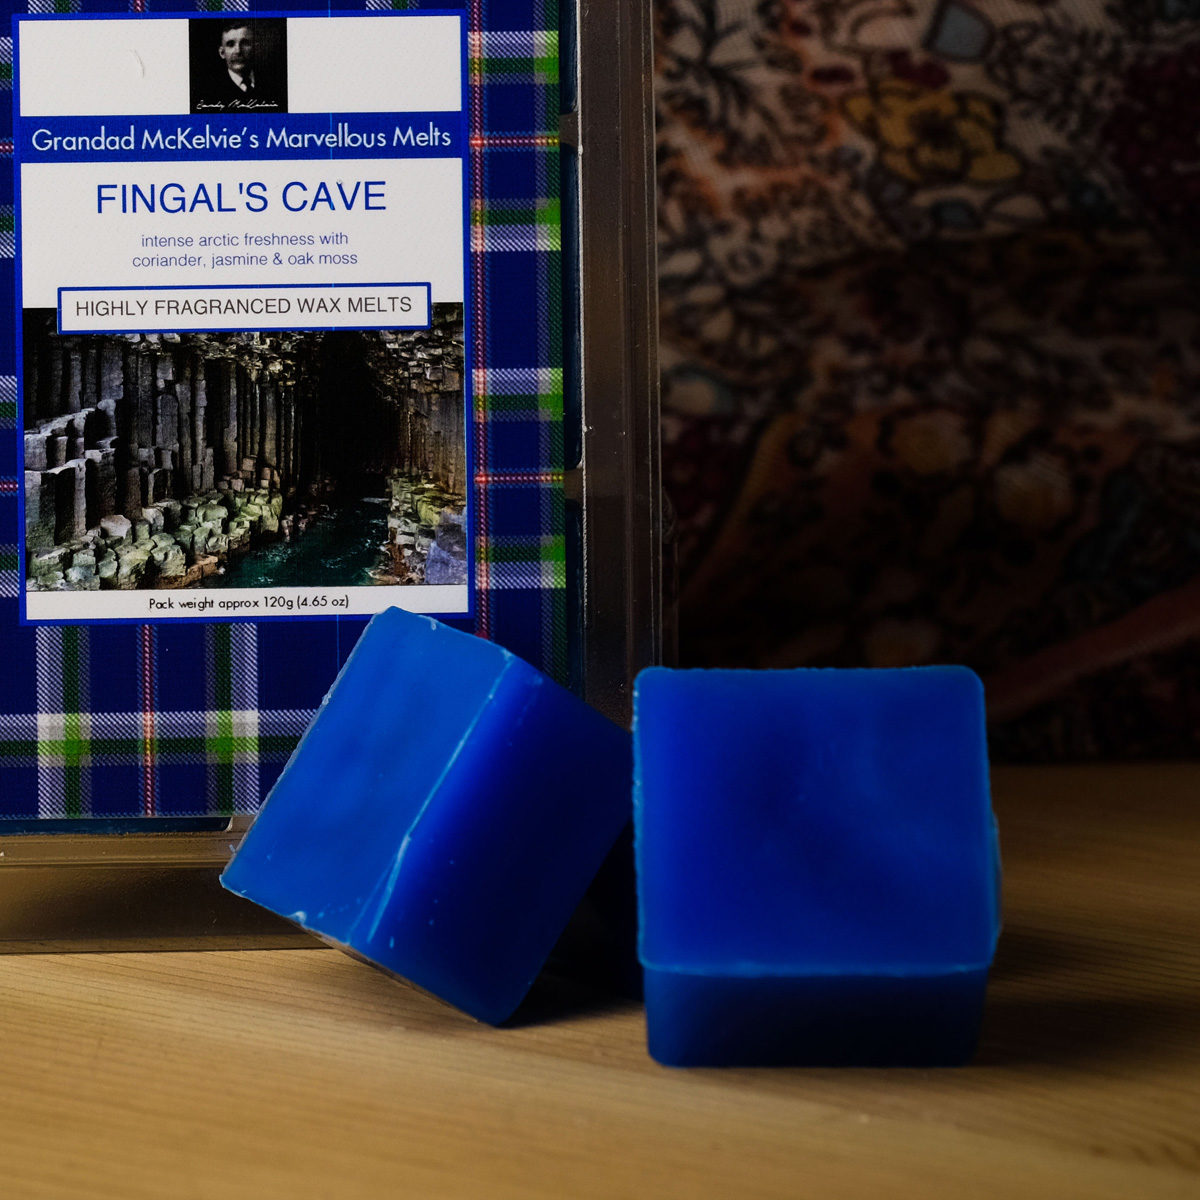 Fingal's Cave Wax Melts